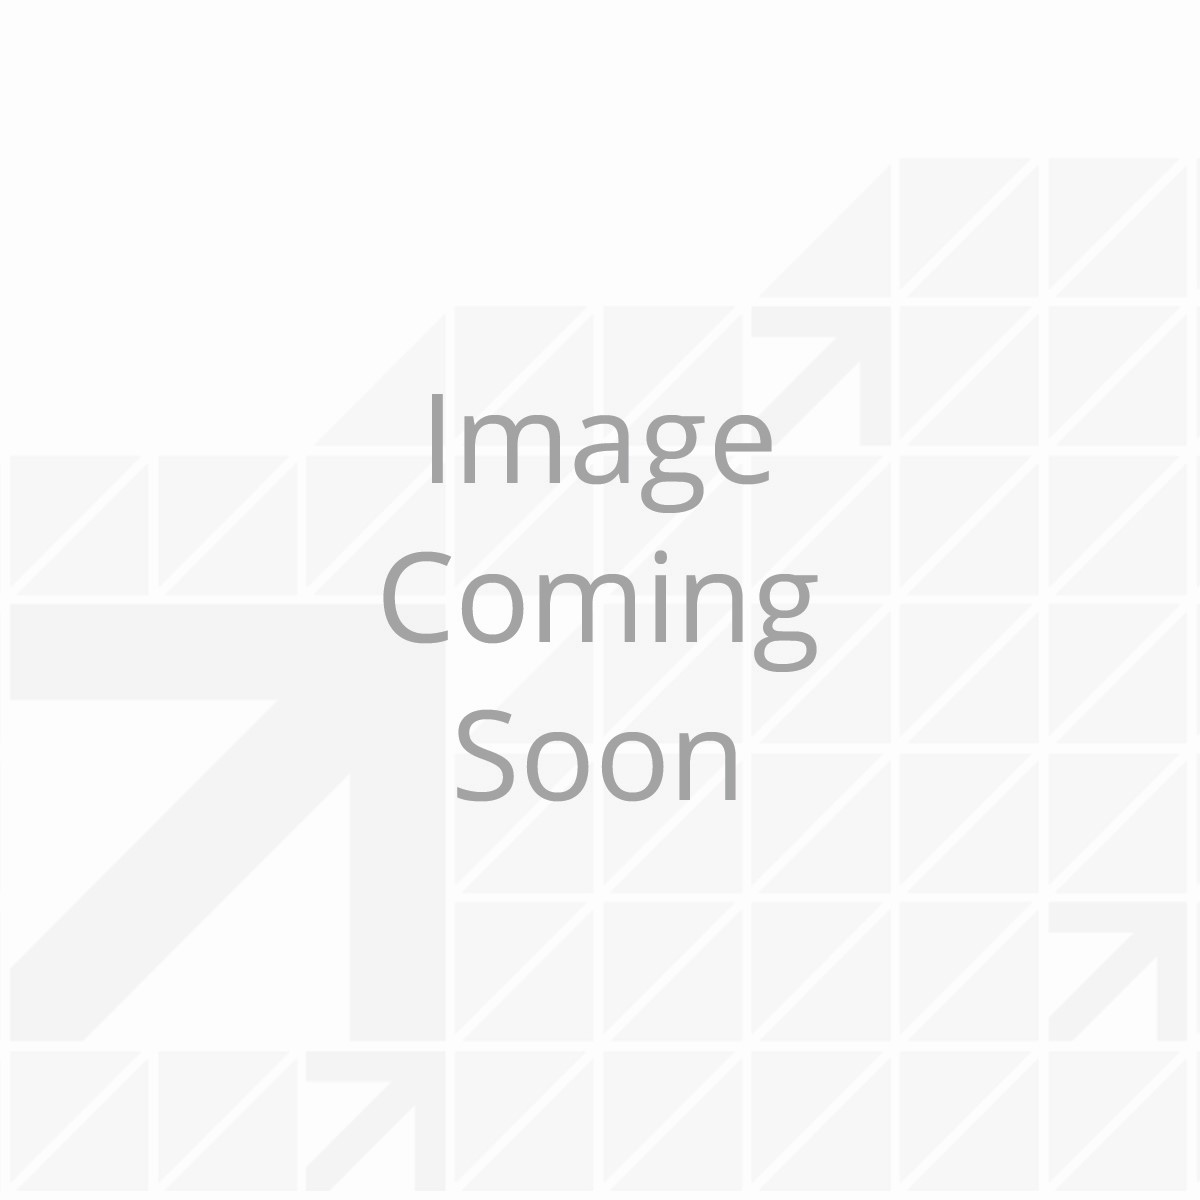 Override Plug for Power Tongue Jack - 2 Pack